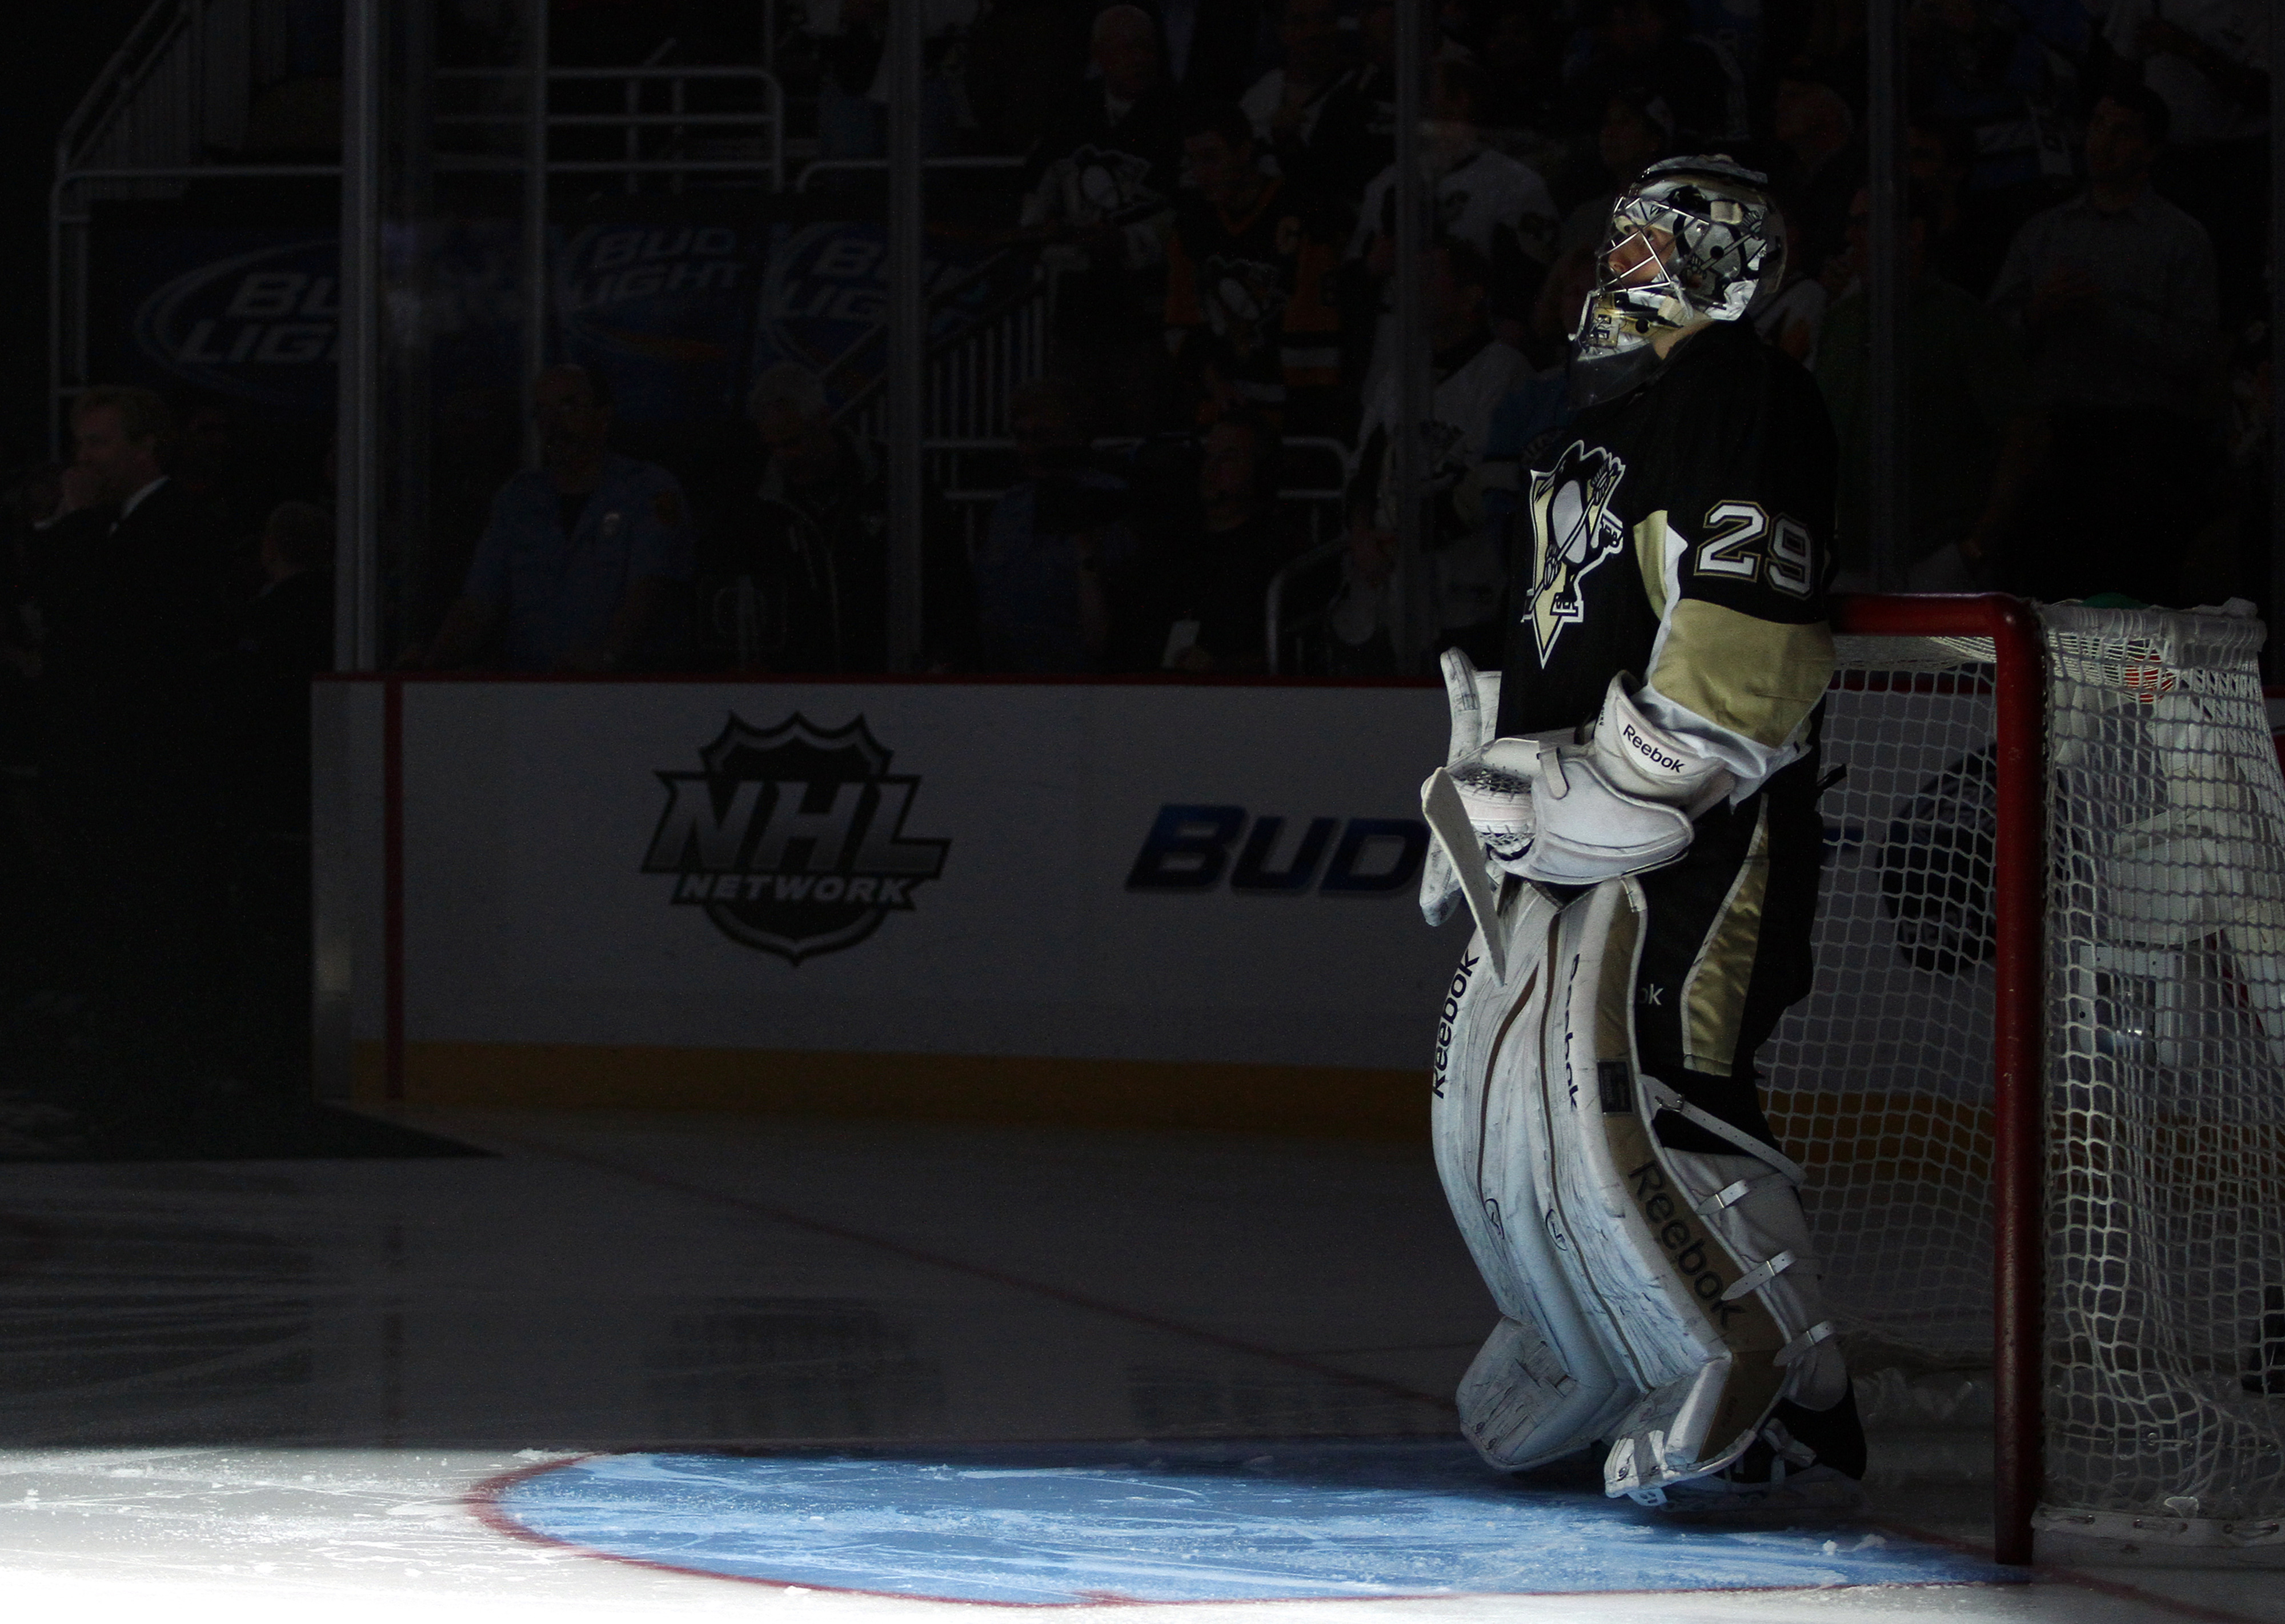 With no action around Fleury's net in Game 1, CONSOL fossil fuel burners shut the lights off in his end as part of their green initiative.